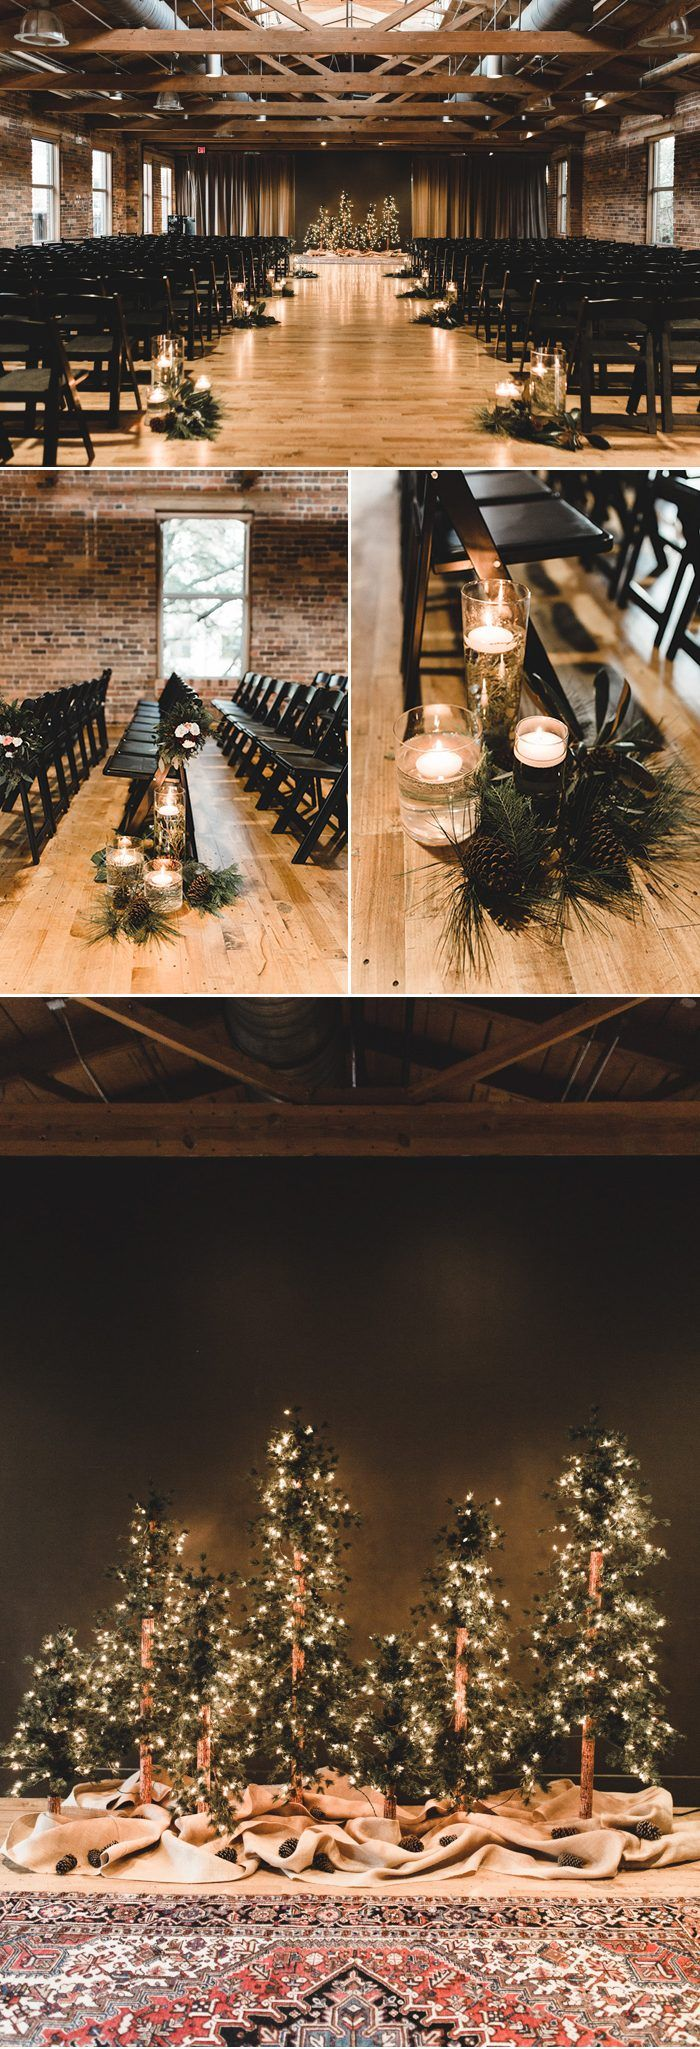 You Have To See The Unique Fashion Choices In This Epic Southern Wedding At Huguenot Mill And Loft Junebug Weddings Winter Wedding Ceremonies Winter Wedding Receptions Winter Wedding Planning